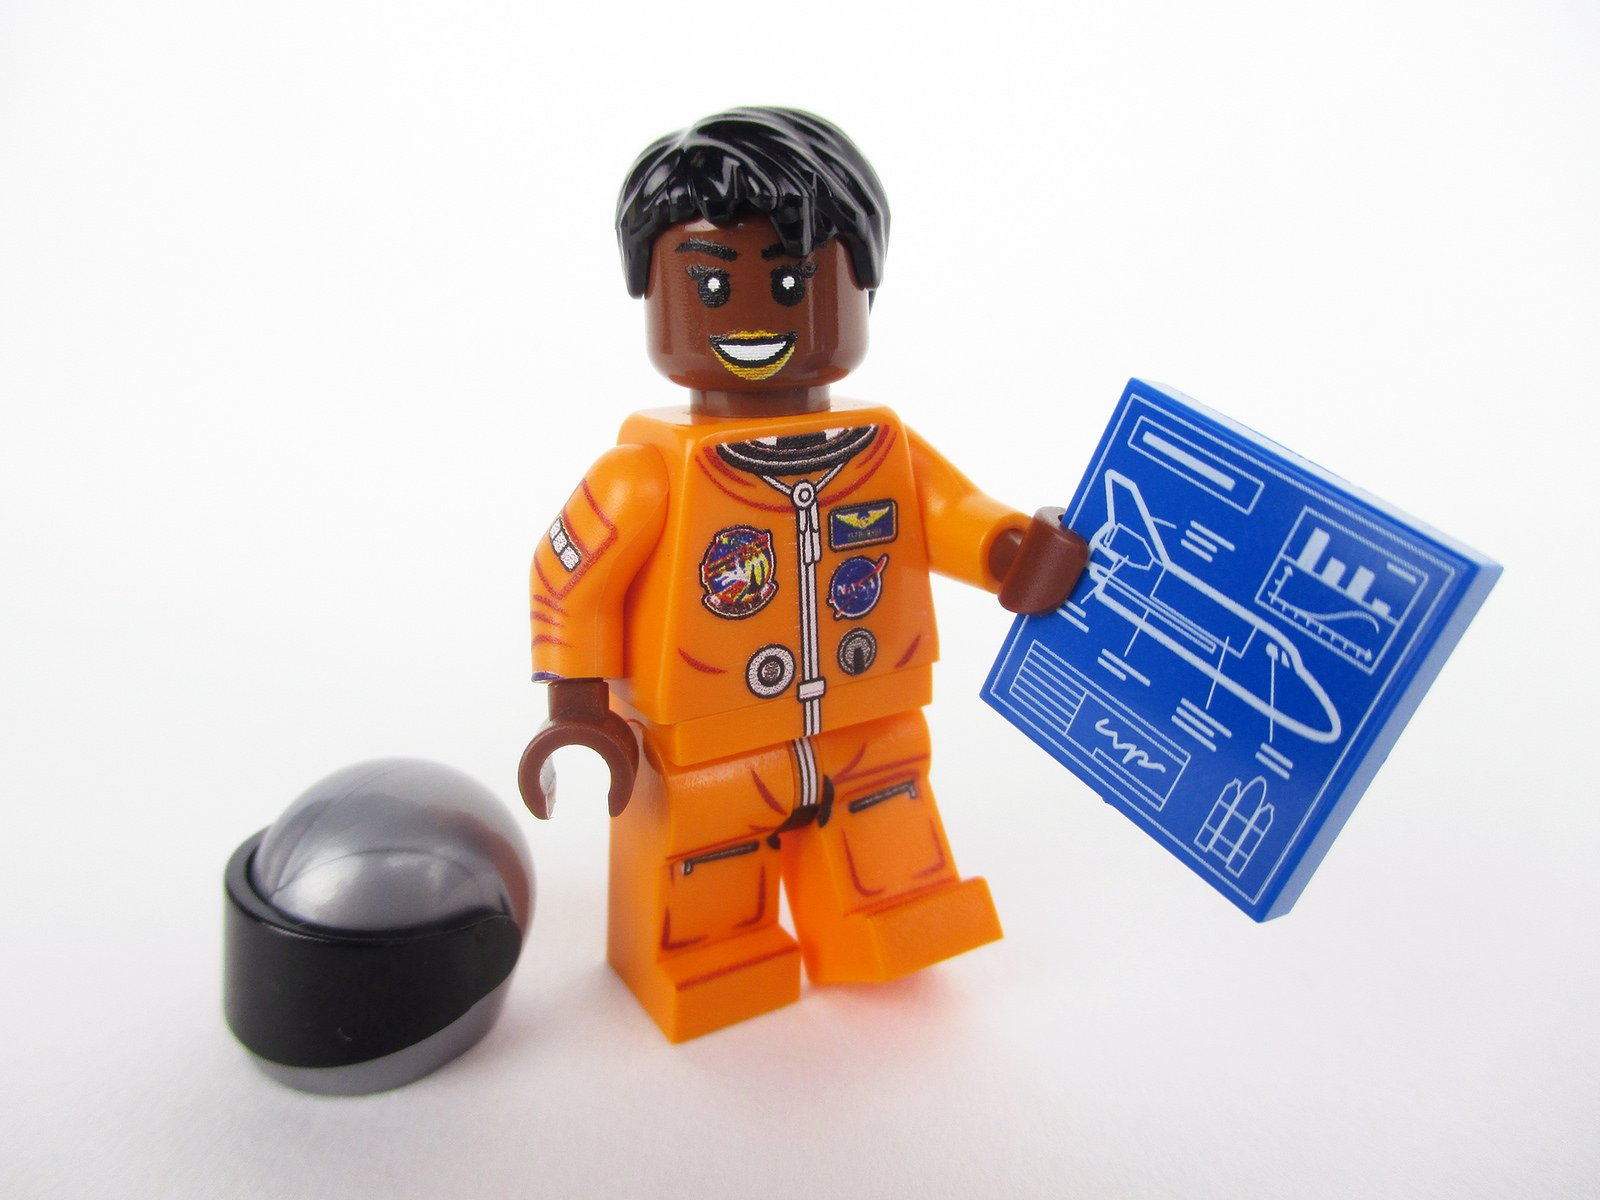 Come Quick Lego S Thinking About Making A Female Nasa